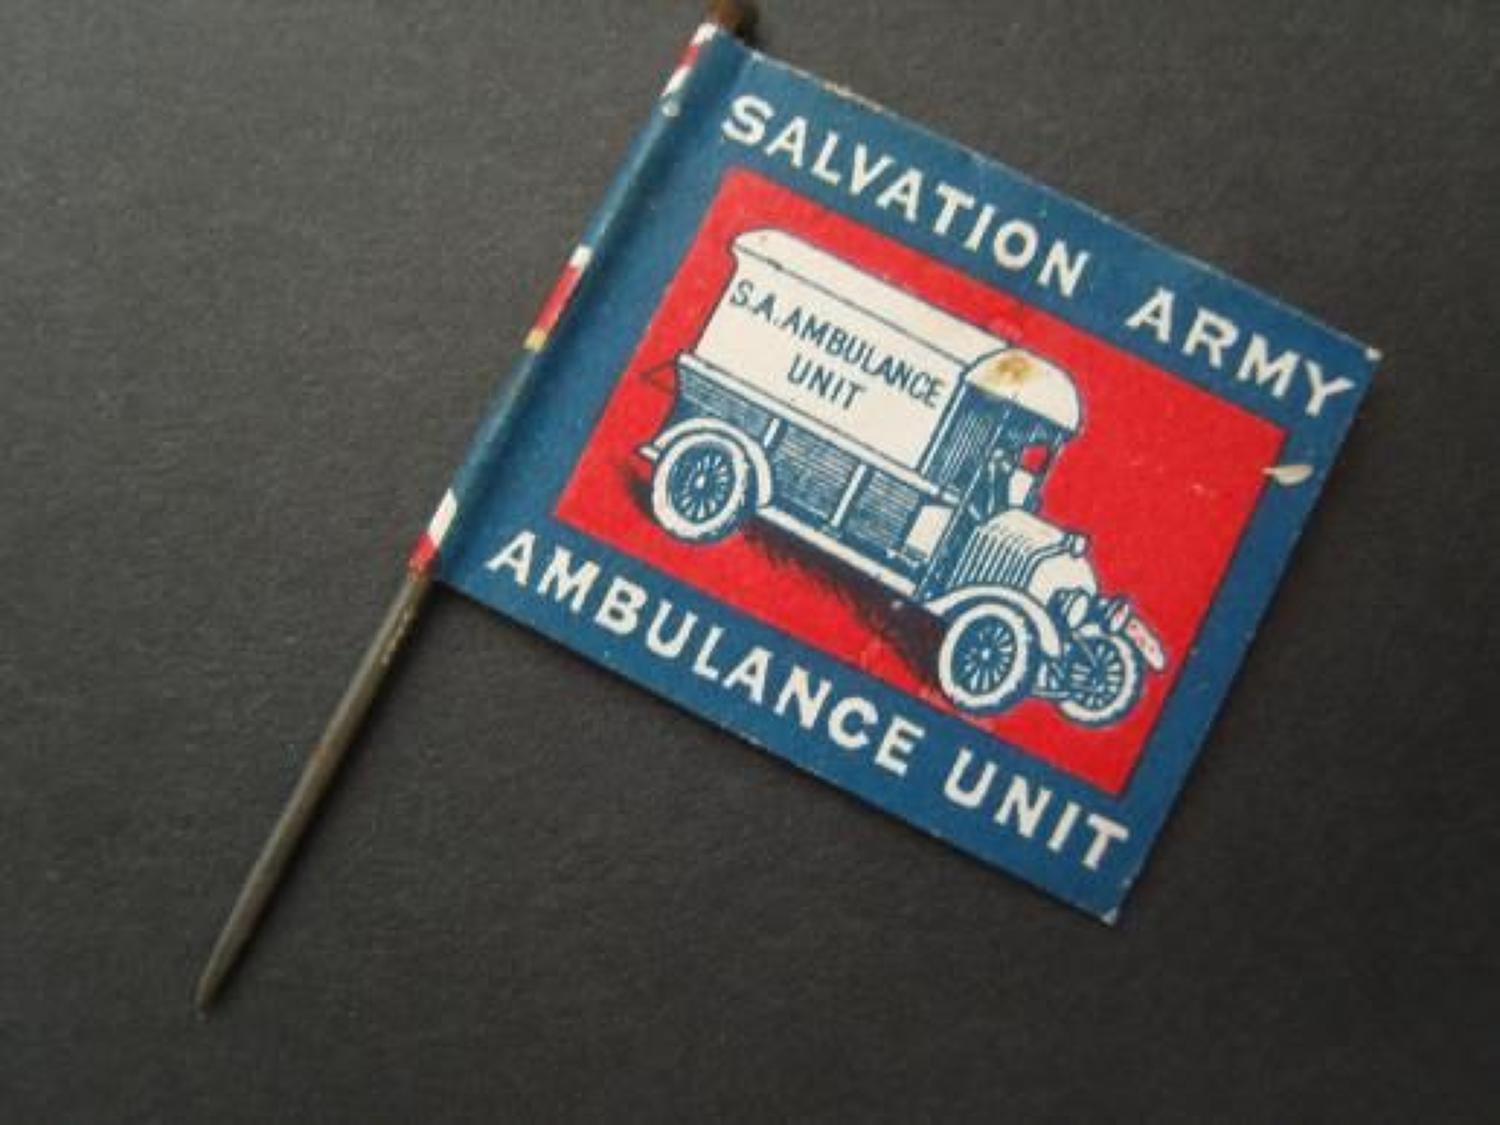 Salvation Army: Ambulance Unit: Home from Home